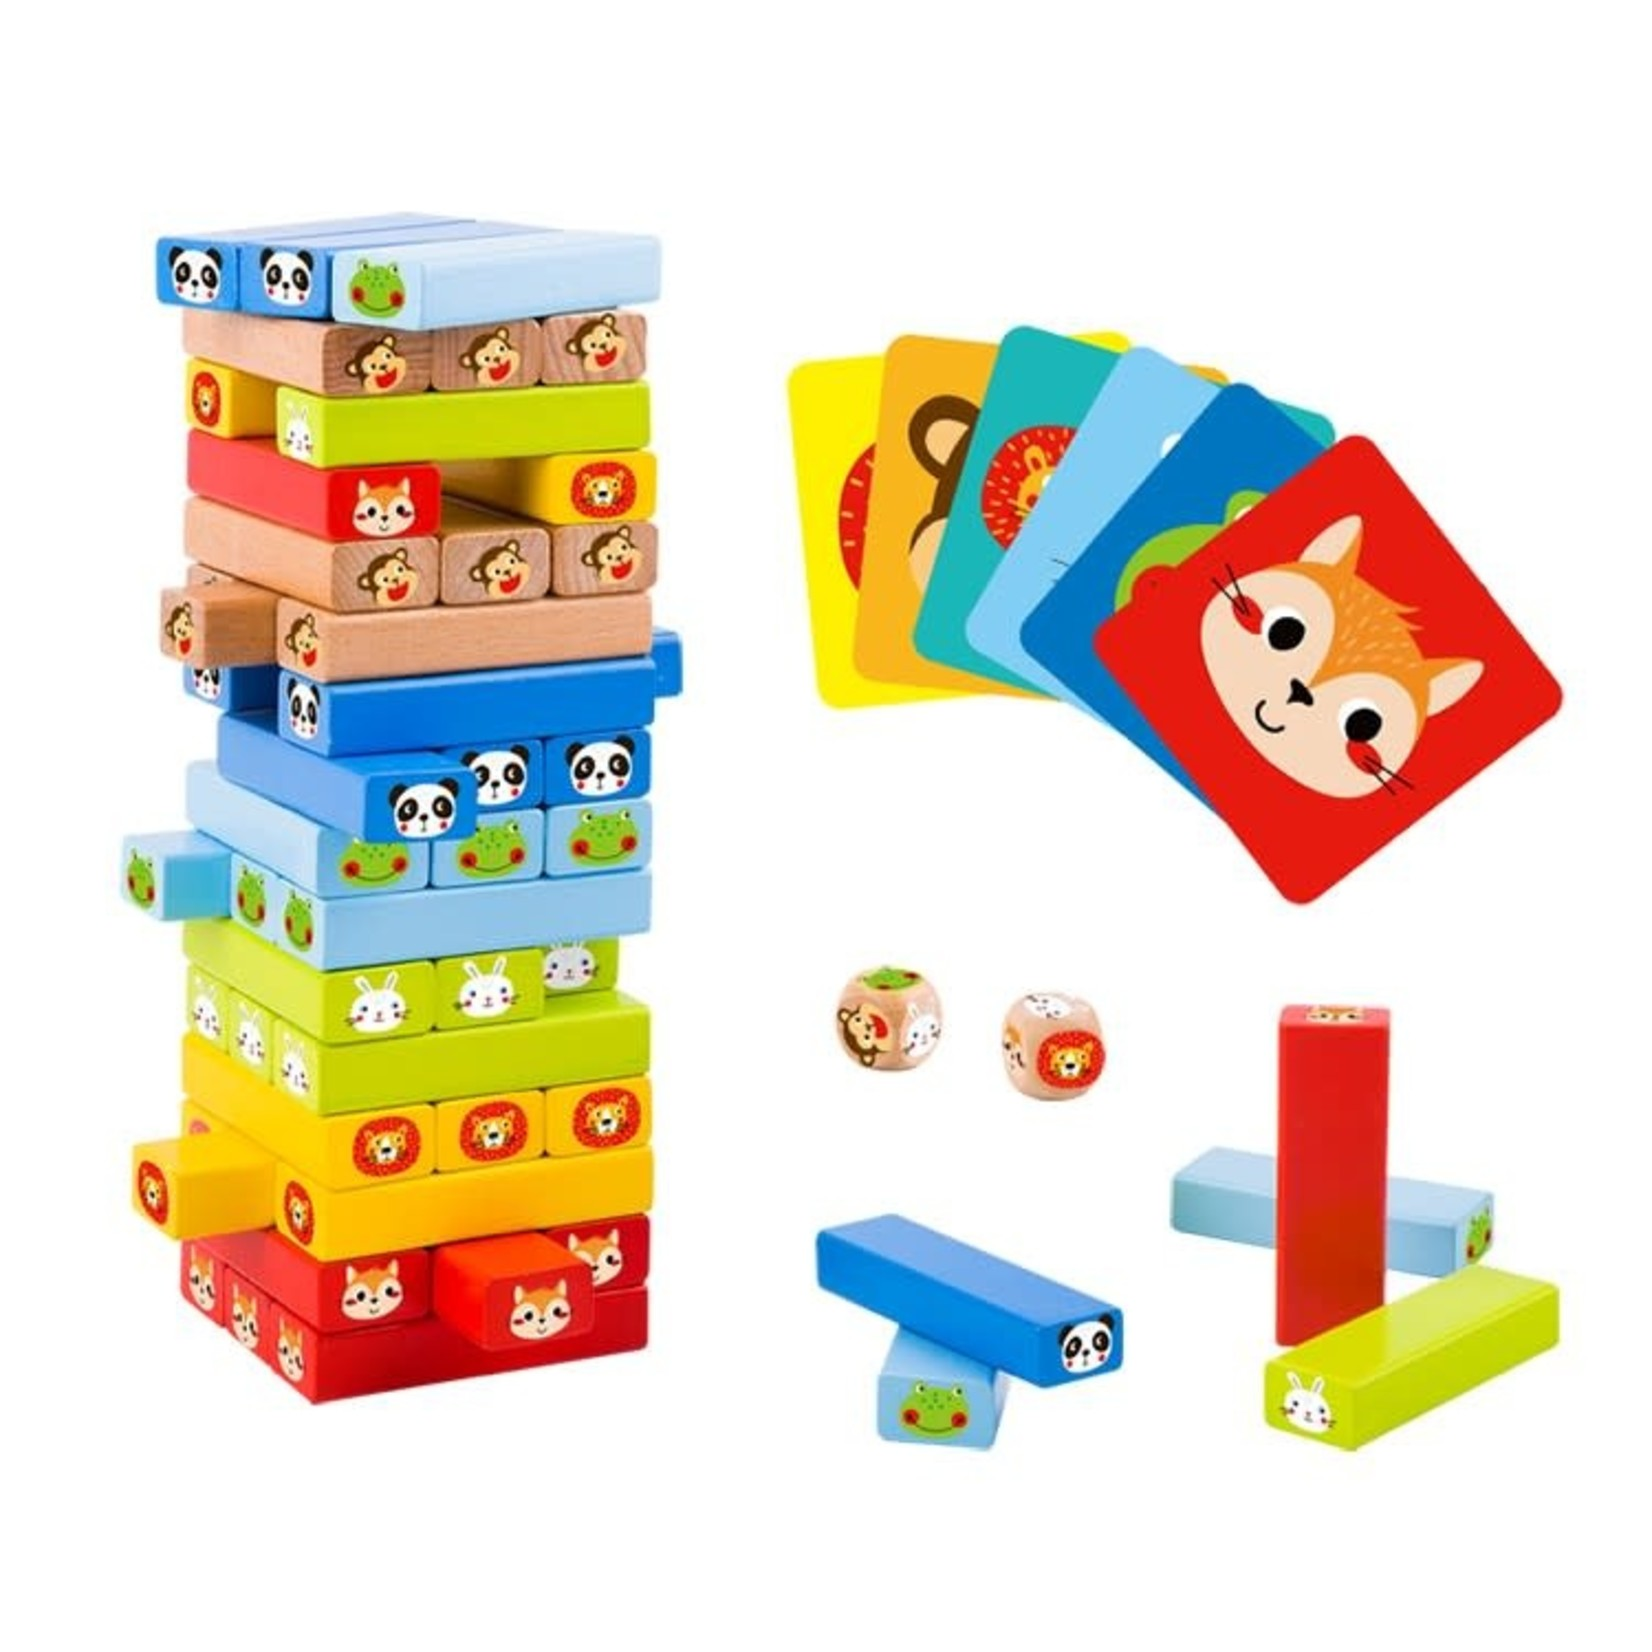 Tooky Toy Stacking Game - Animals